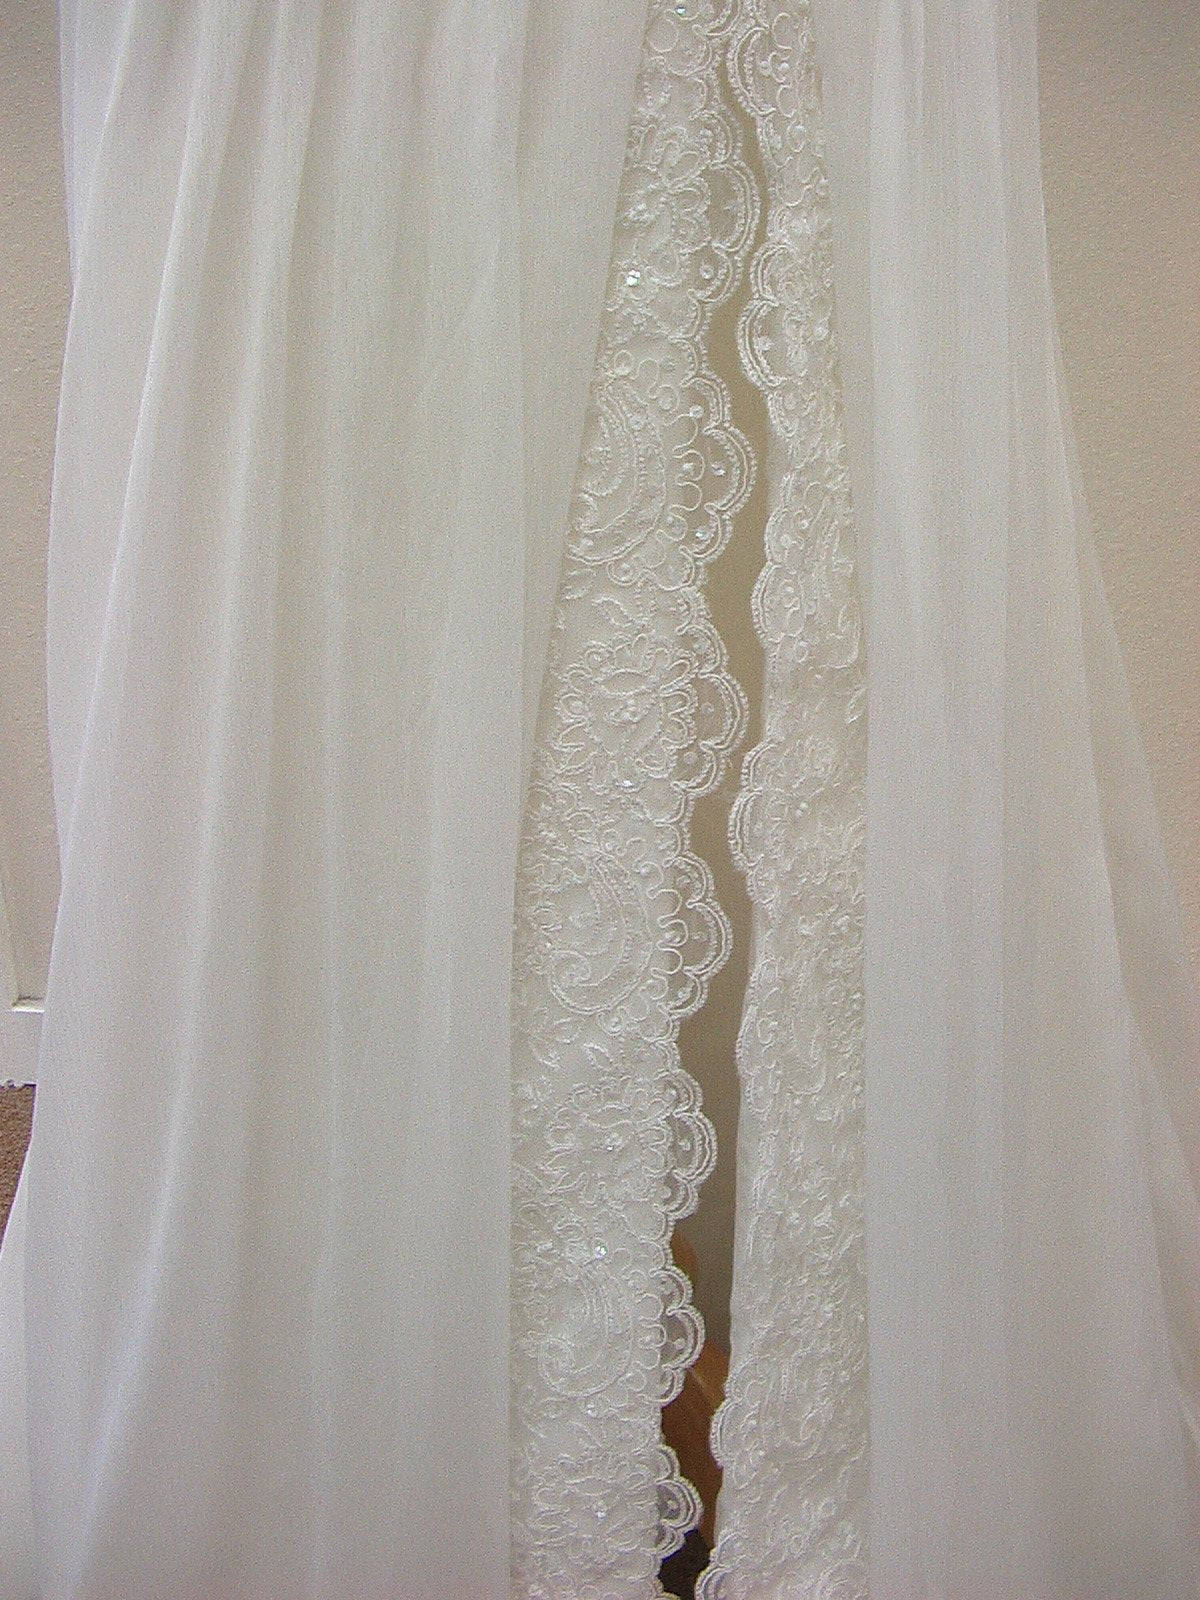 White One Nurse by Pronovias Off White size 10 In Stock Wedding Dress - Tom's Bridal